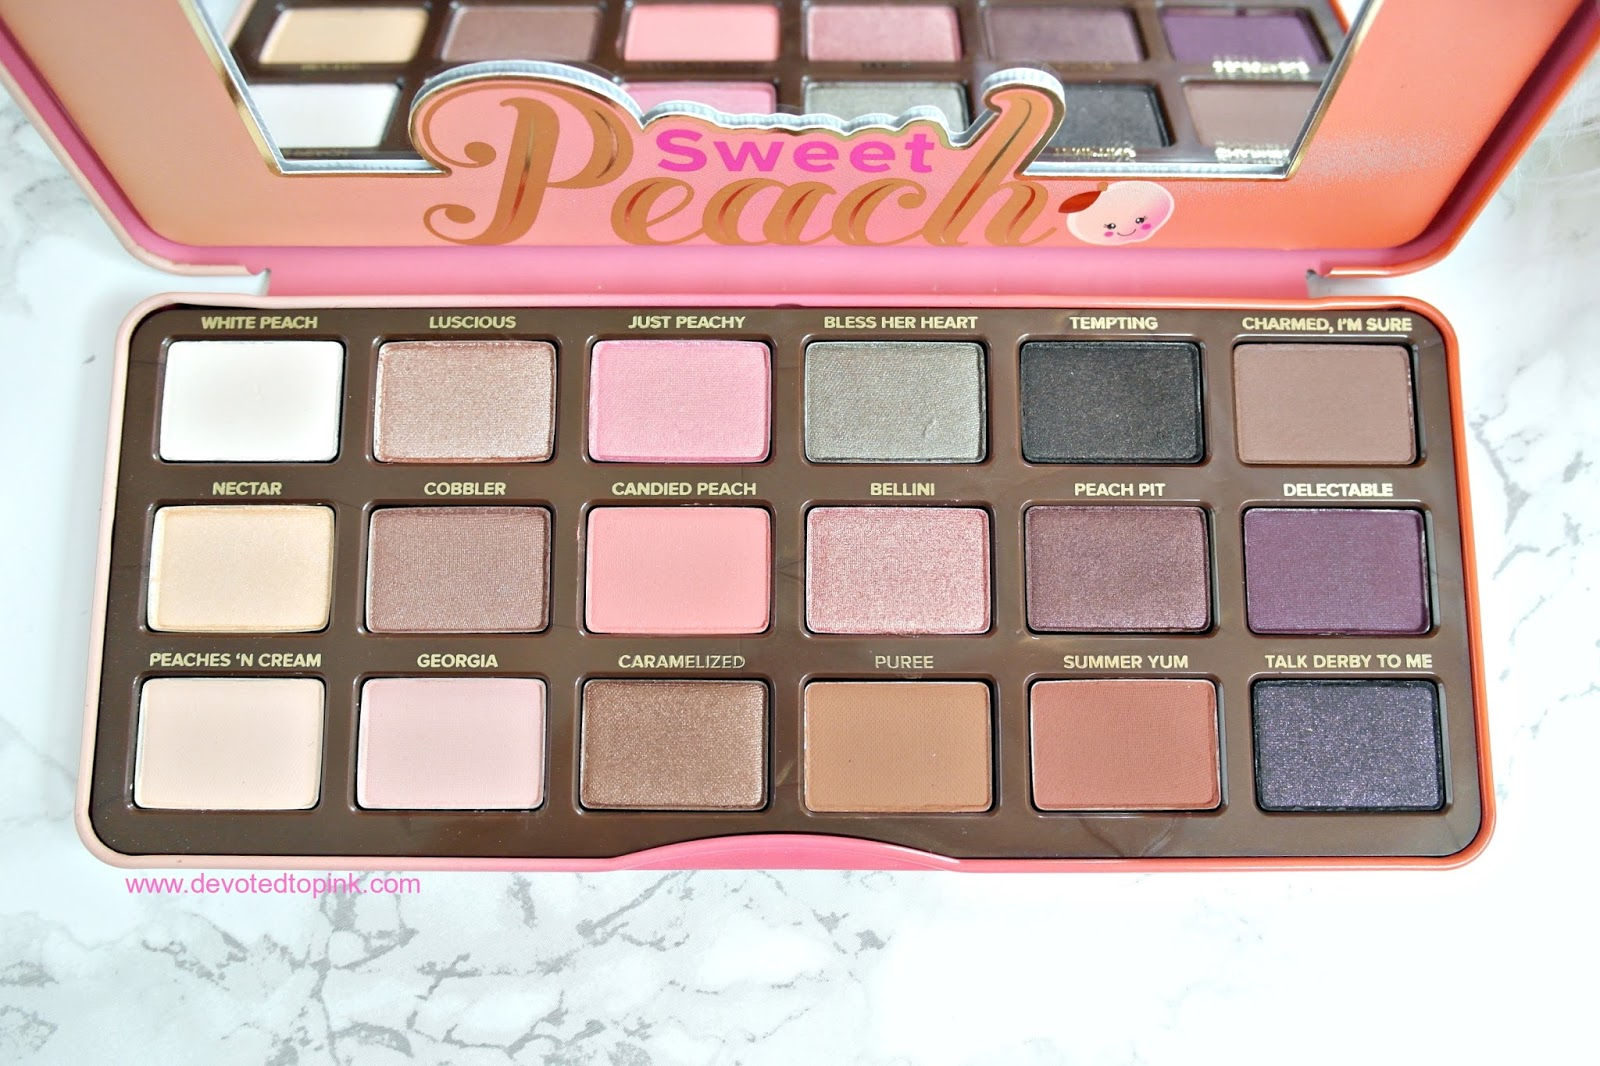 Too Faced, Sweet Peach Palette, Review, Swatches, colours